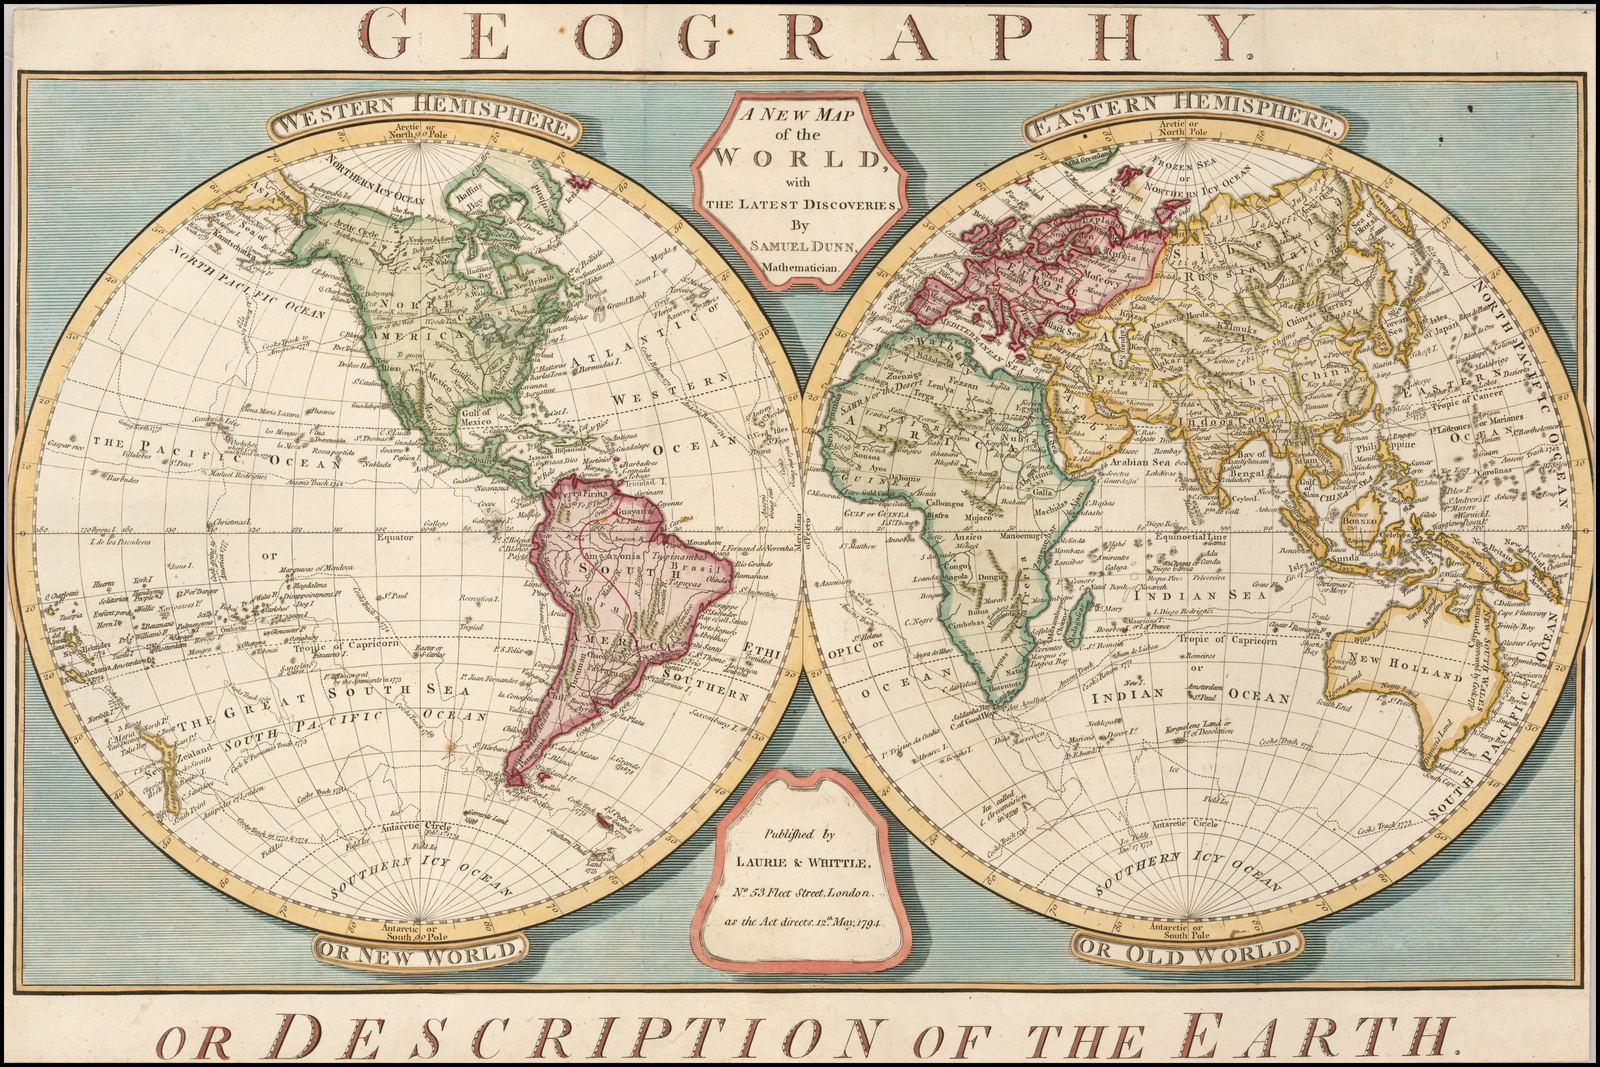 The New Map Of The World.A New Map Of The World With The Latest Discoveries By Samuel Dunn